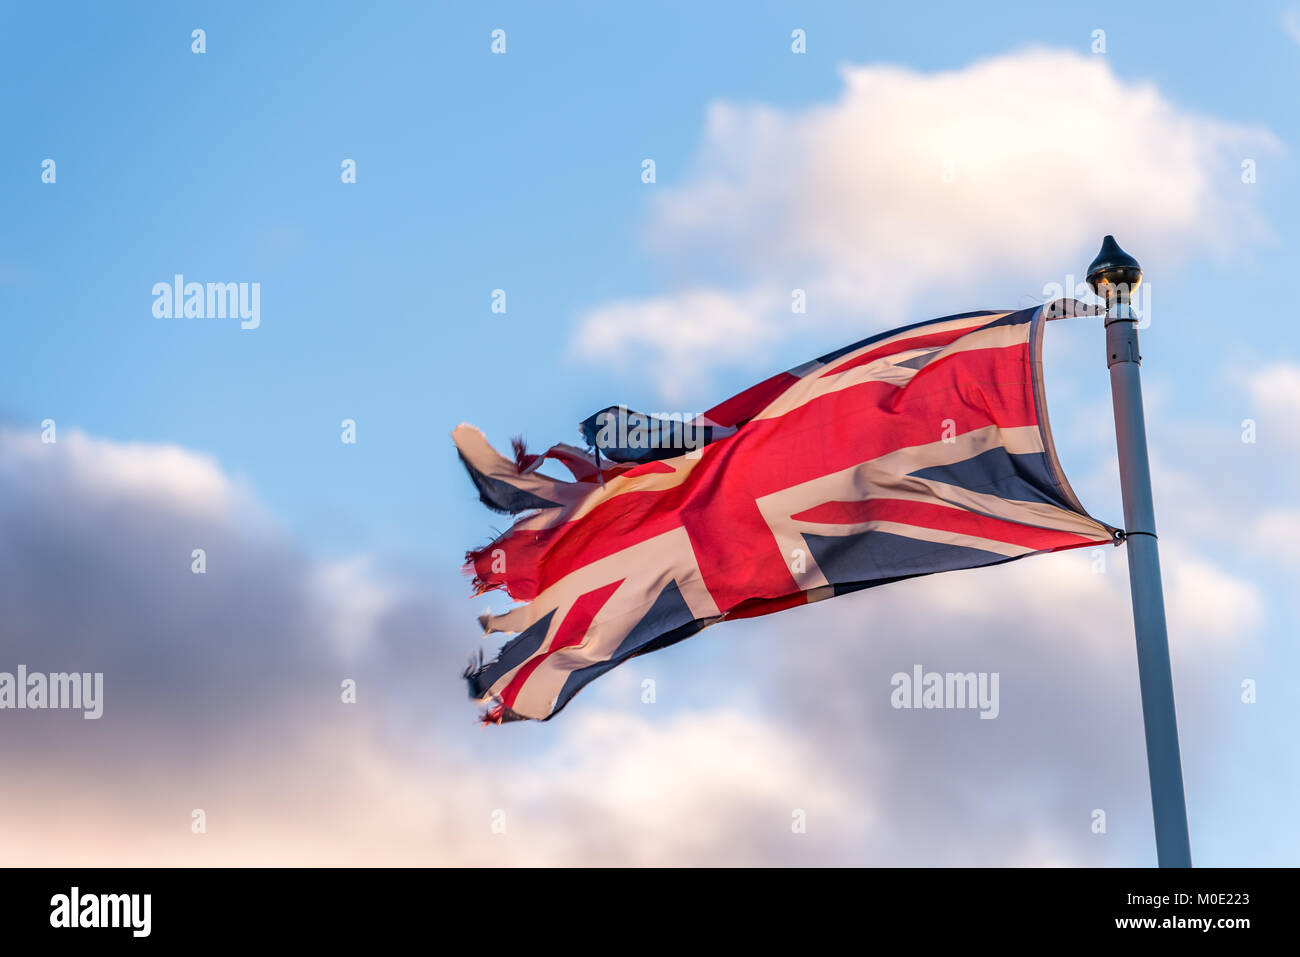 British Flag with torn edges waving over cloudy sky. - Stock Image